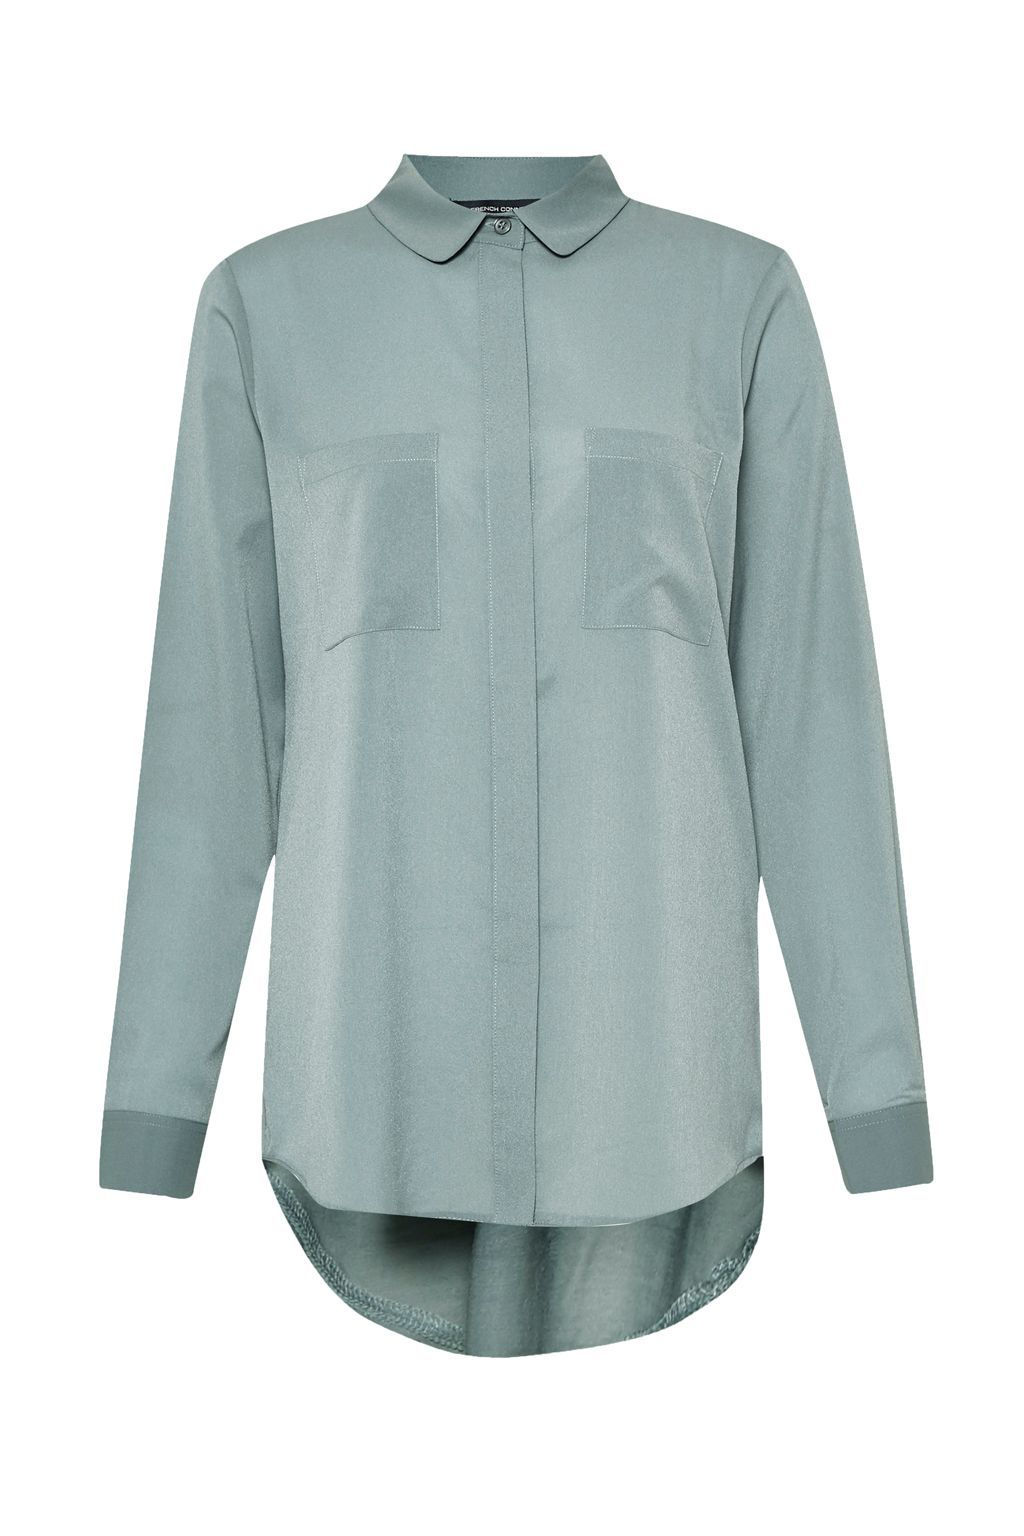 Polly Plains Shirt, Grey - neckline: shirt collar/peter pan/zip with opening; pattern: plain; length: below the bottom; style: shirt; predominant colour: light grey; occasions: casual; fibres: polyester/polyamide - 100%; fit: body skimming; sleeve length: long sleeve; sleeve style: standard; pattern type: fabric; texture group: other - light to midweight; season: s/s 2016; wardrobe: basic